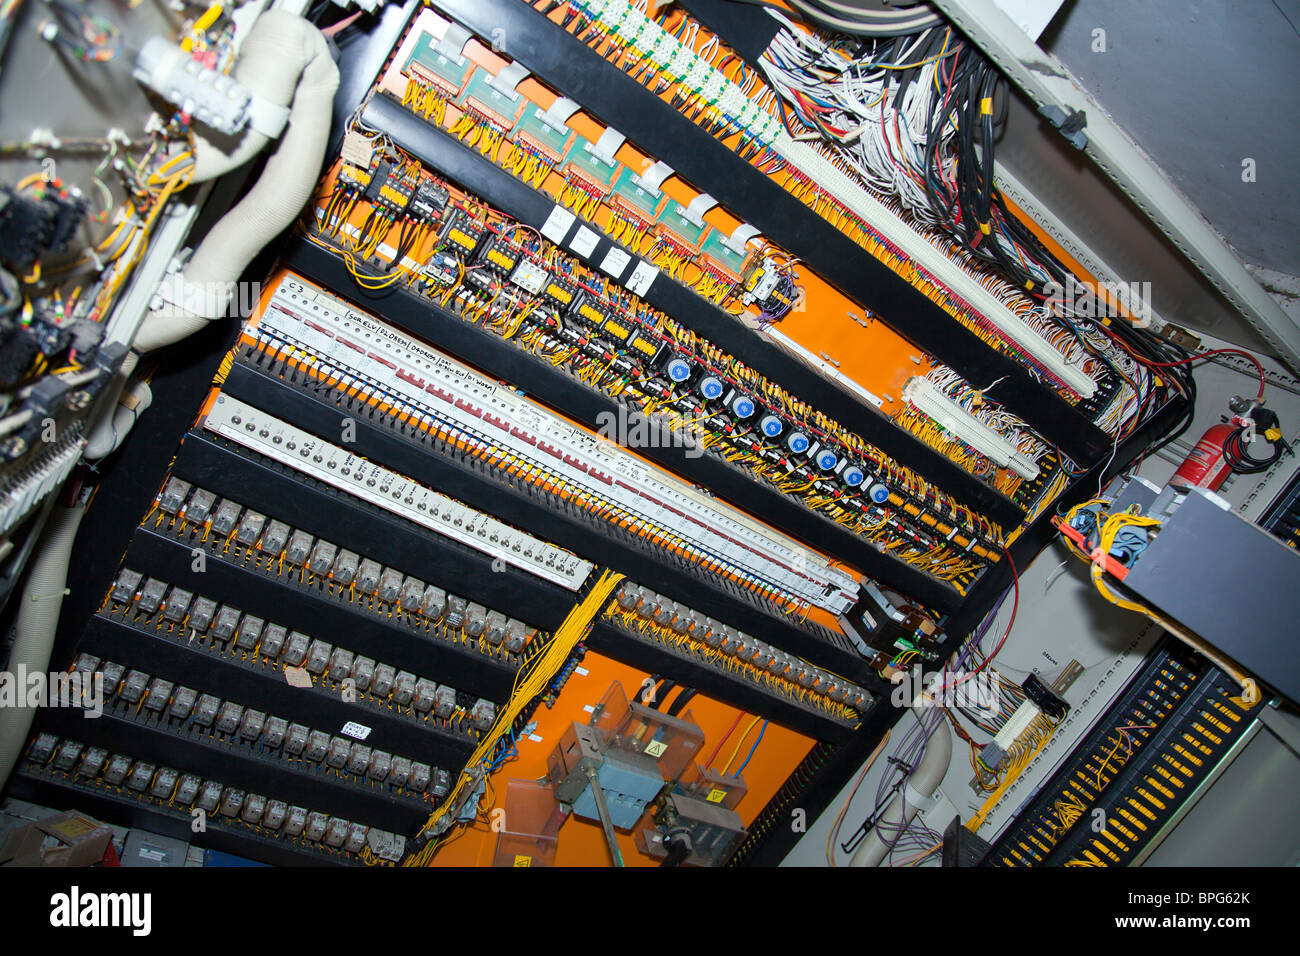 Electrical control panel in a derelict factory, wires and switches ...